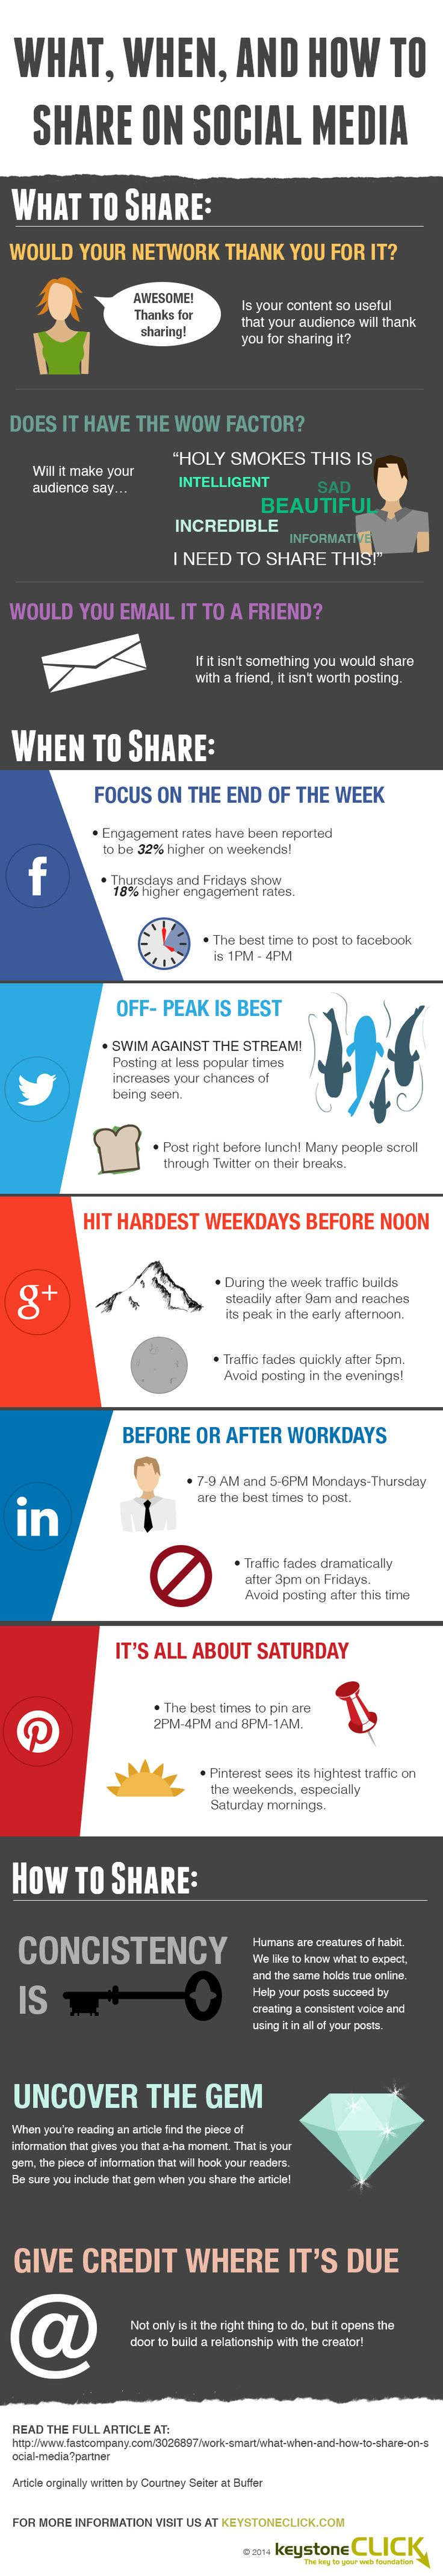 The Science of What, When, and How to Post on #SocialMedia - #infographic